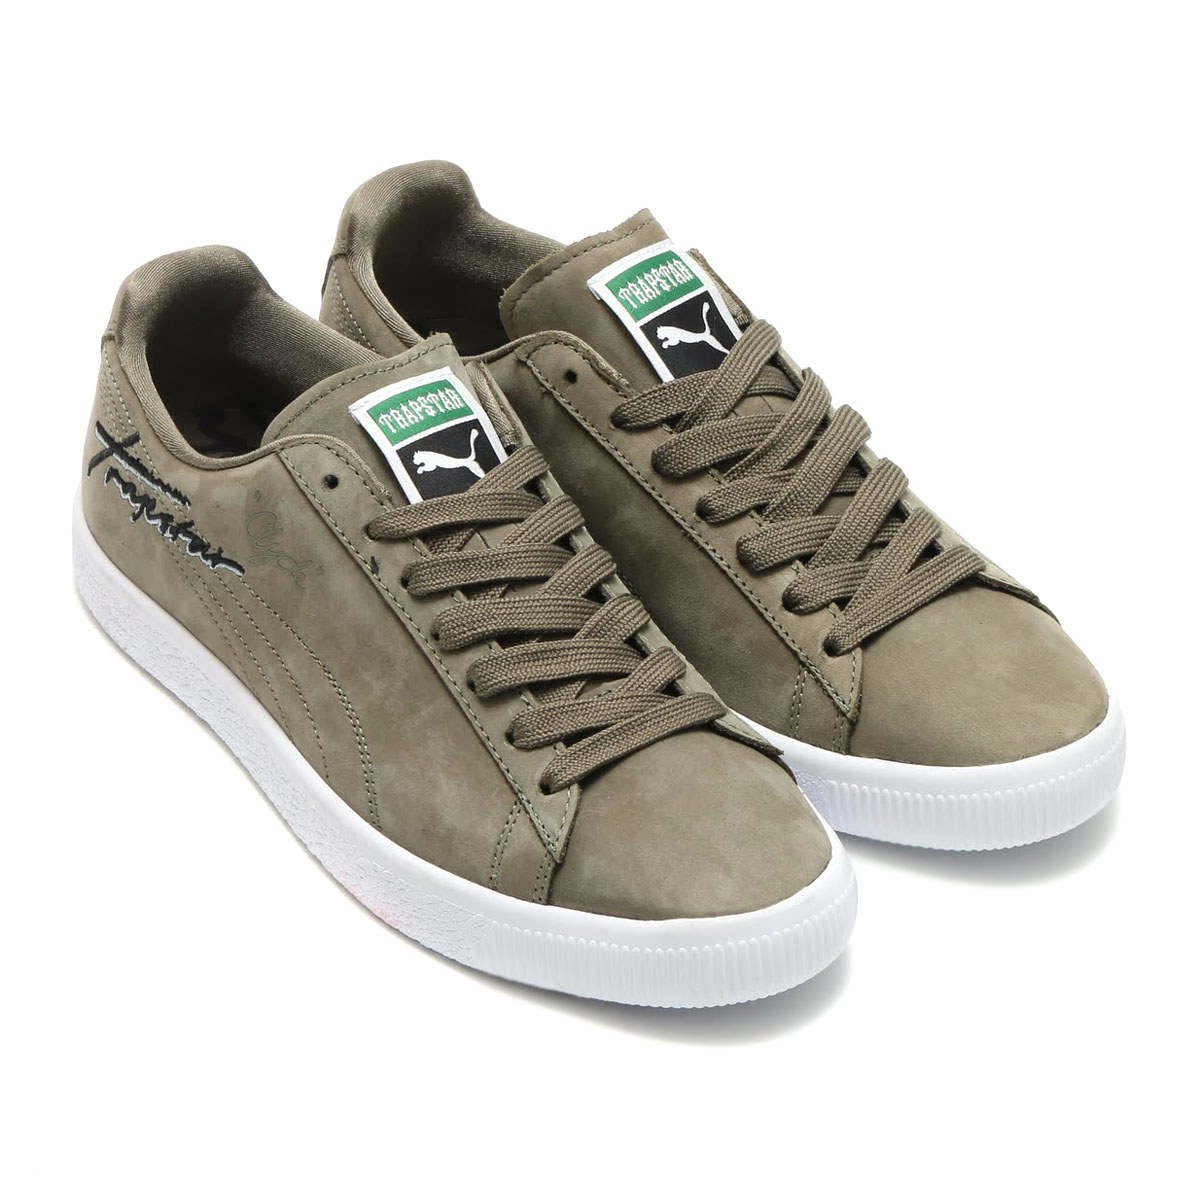 b2e62b2a86f2 Collaboration Style with TRAPSTAR using CLYDE which is ICON of PUMA. I use  good-quality nubuck. I express the LOGO that even the collection of